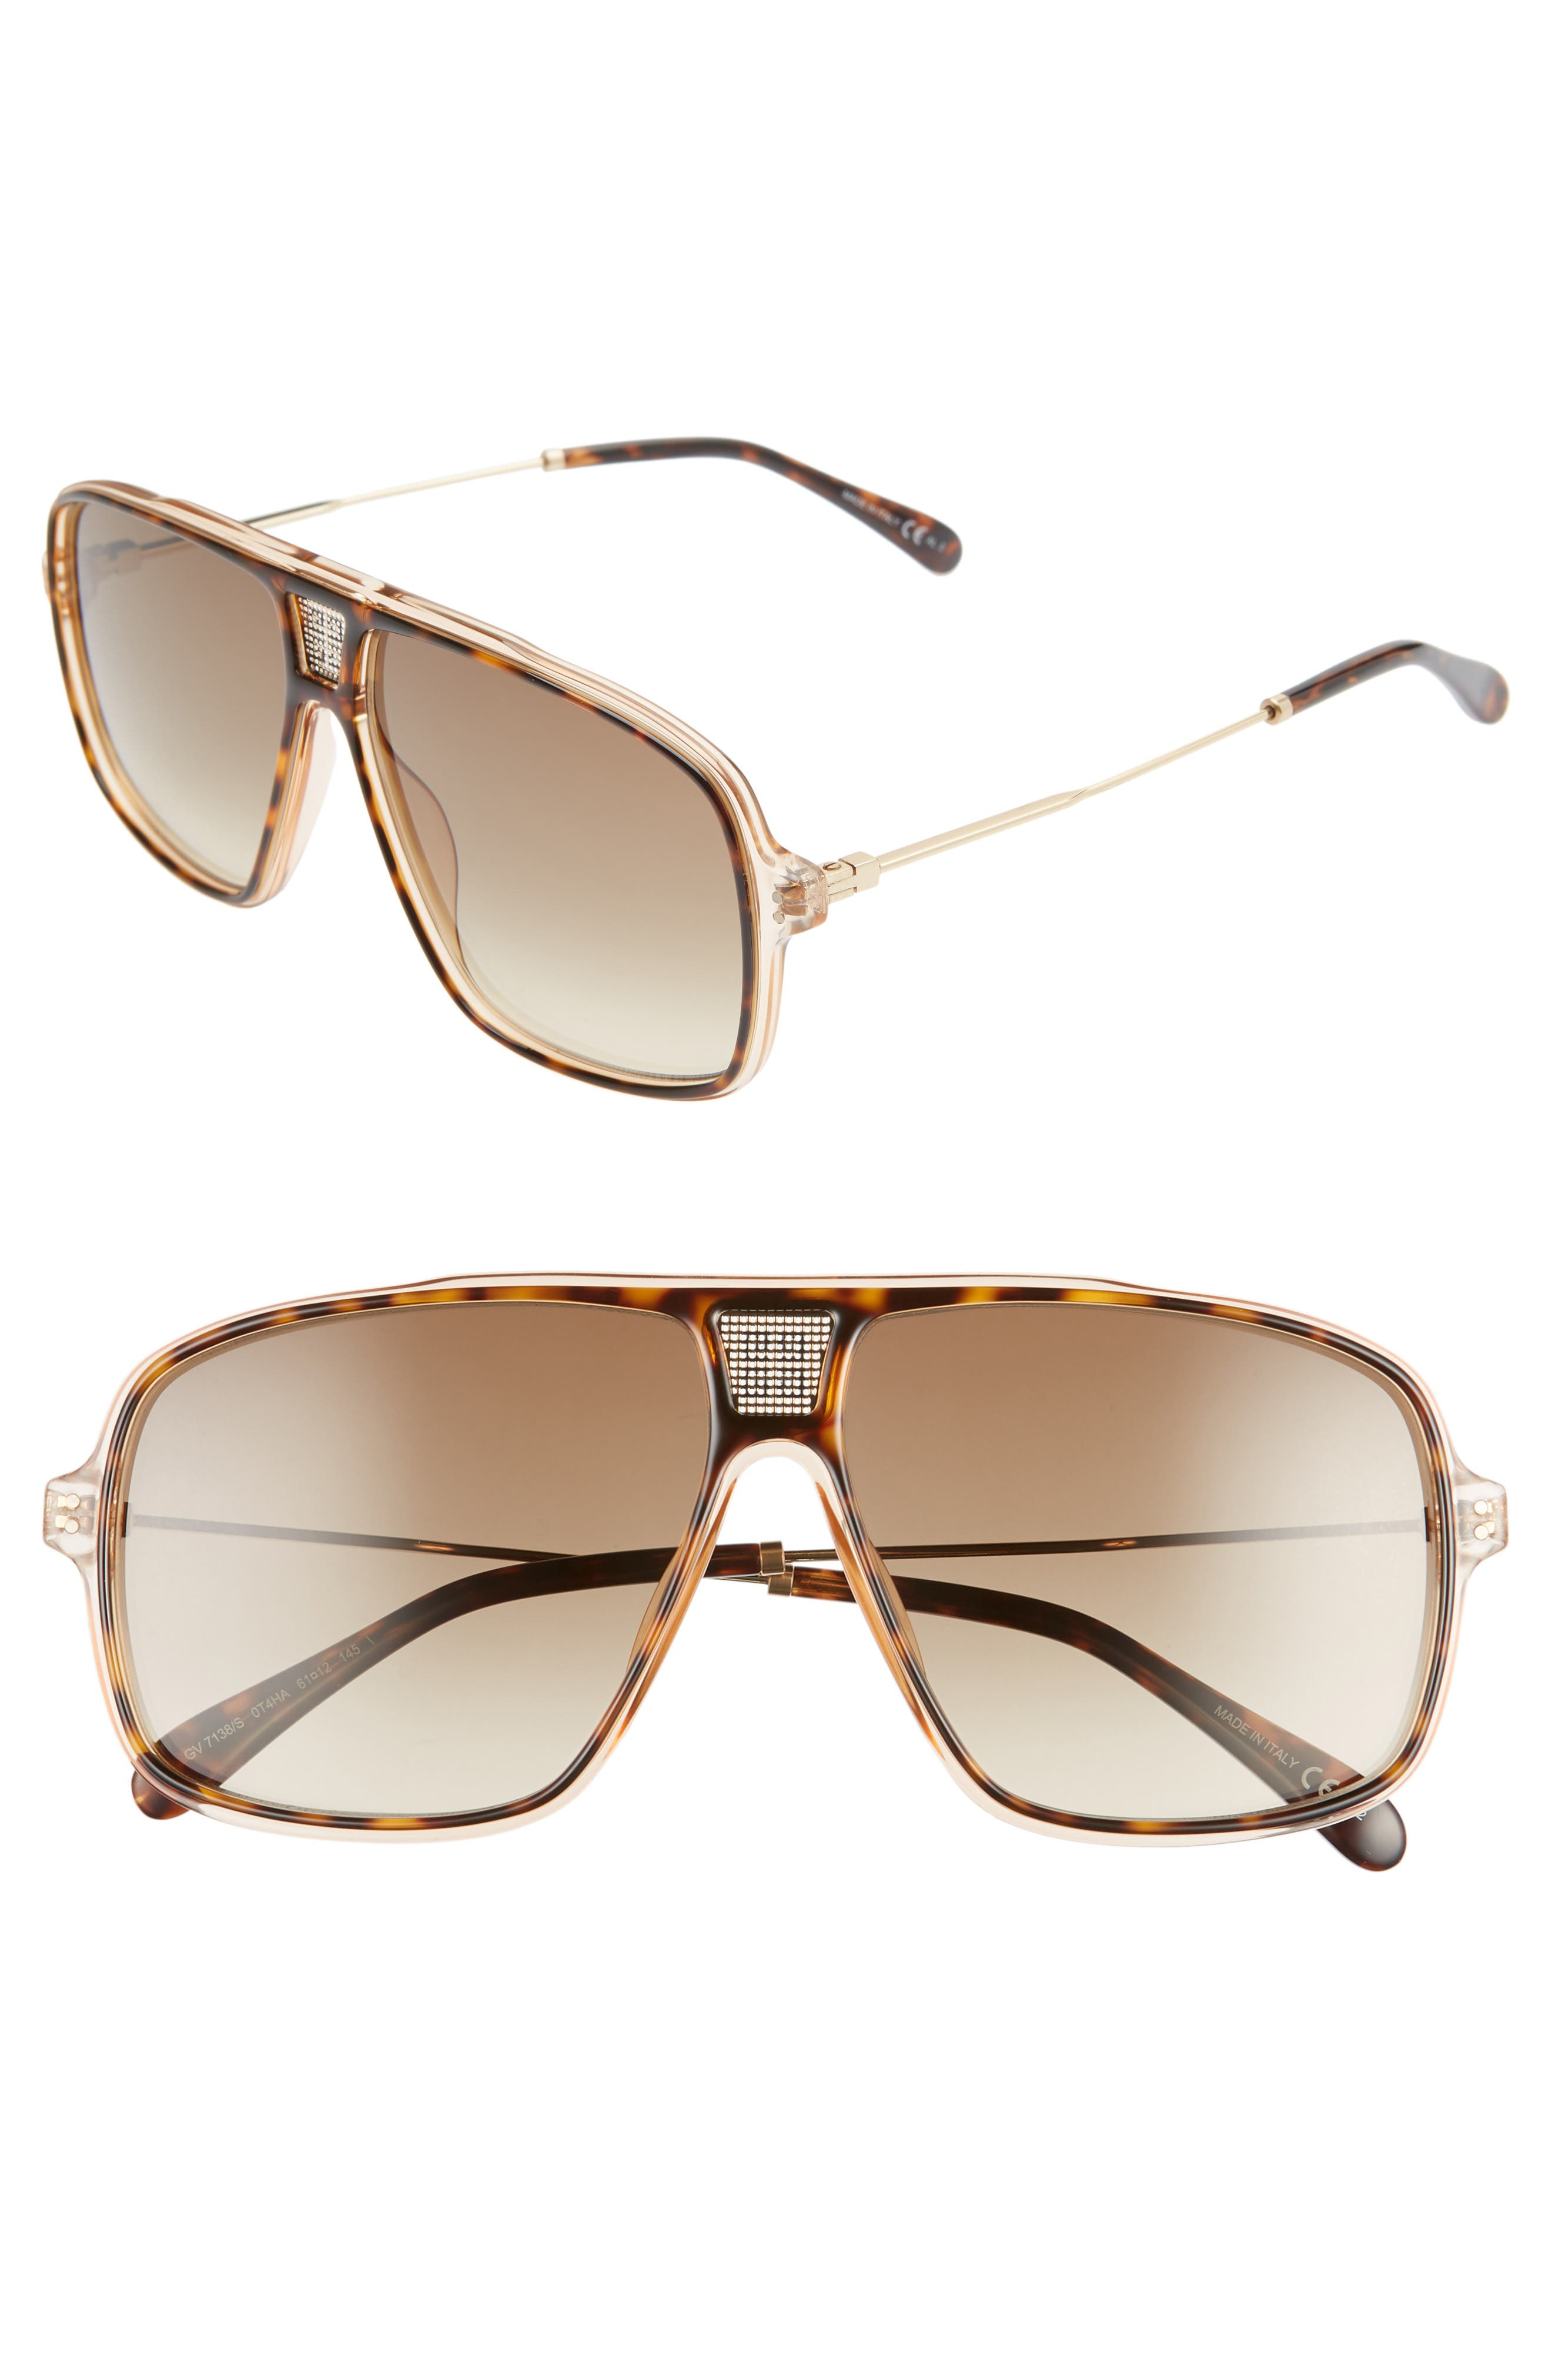 Image of Givenchy 61mm Aviator Sunglasses